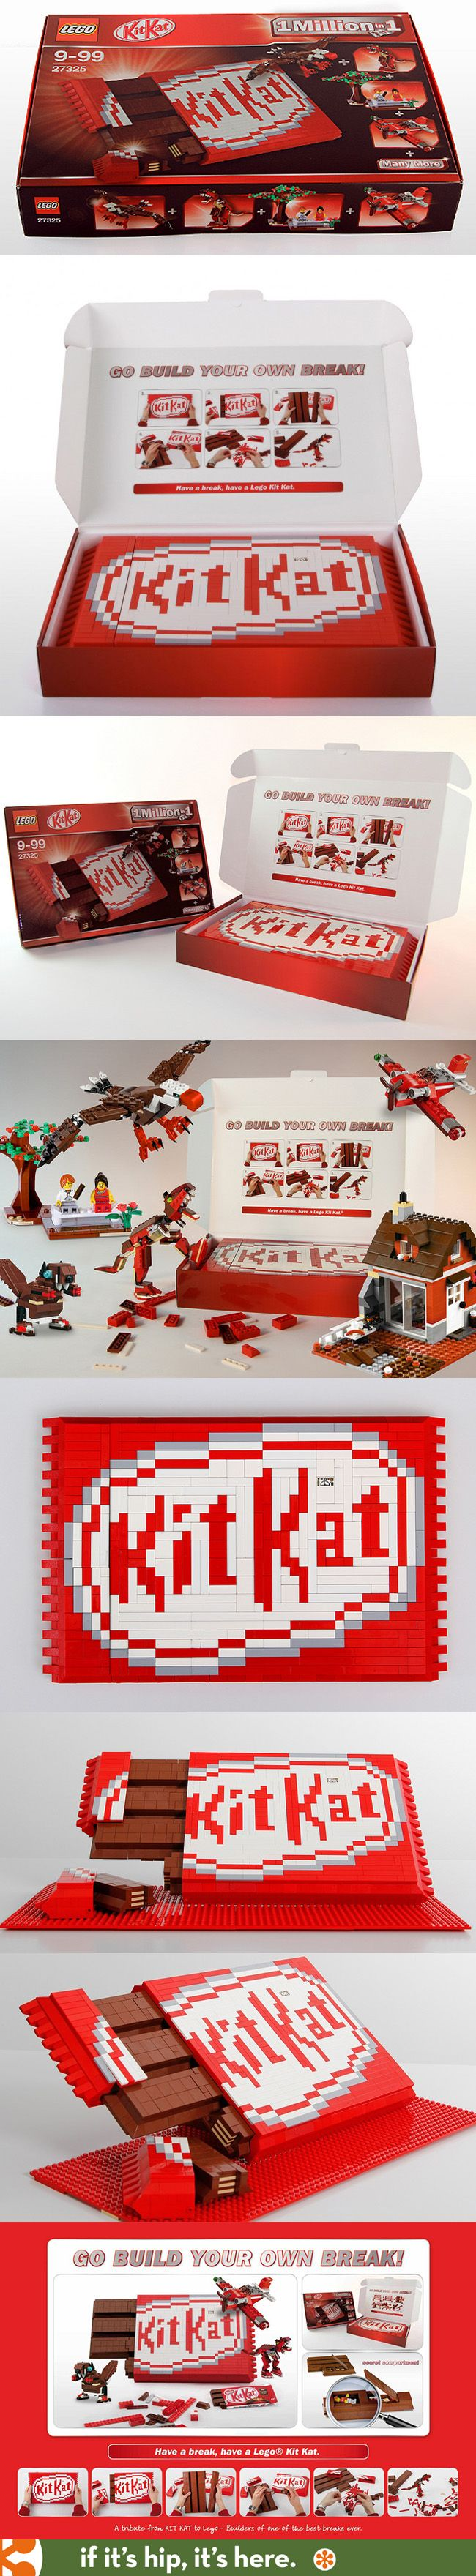 Kit Kat Does A Tribute To Lego (details at the link)